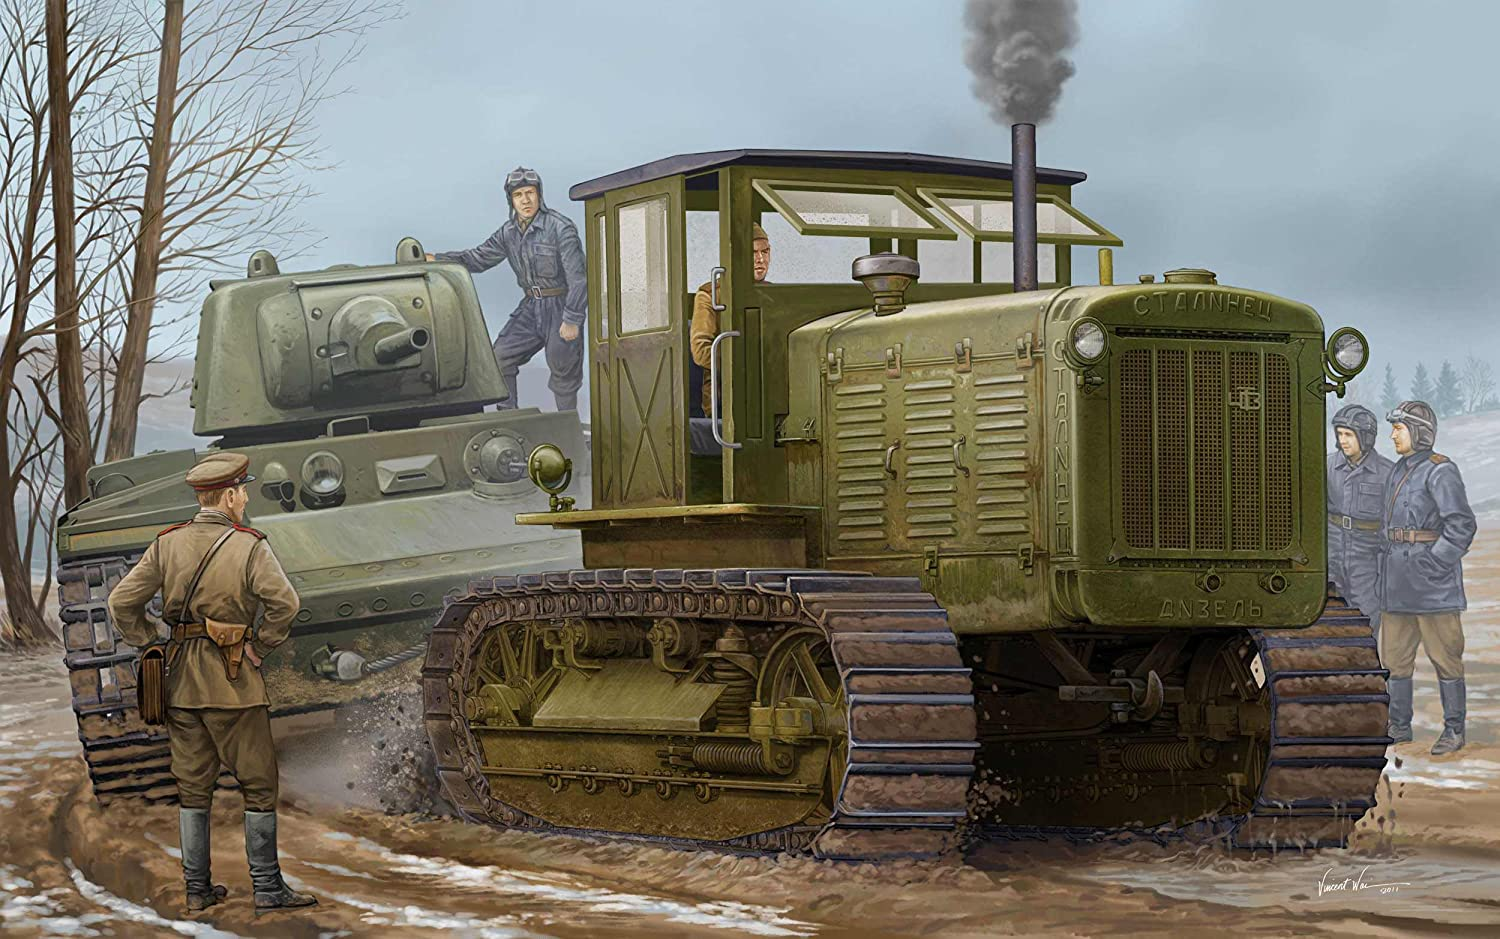 Trumpeter 05539 Modellbausatz Russian ChTZ S-65 Tractor with Cab1 Cab1 Cab1 bf50ad